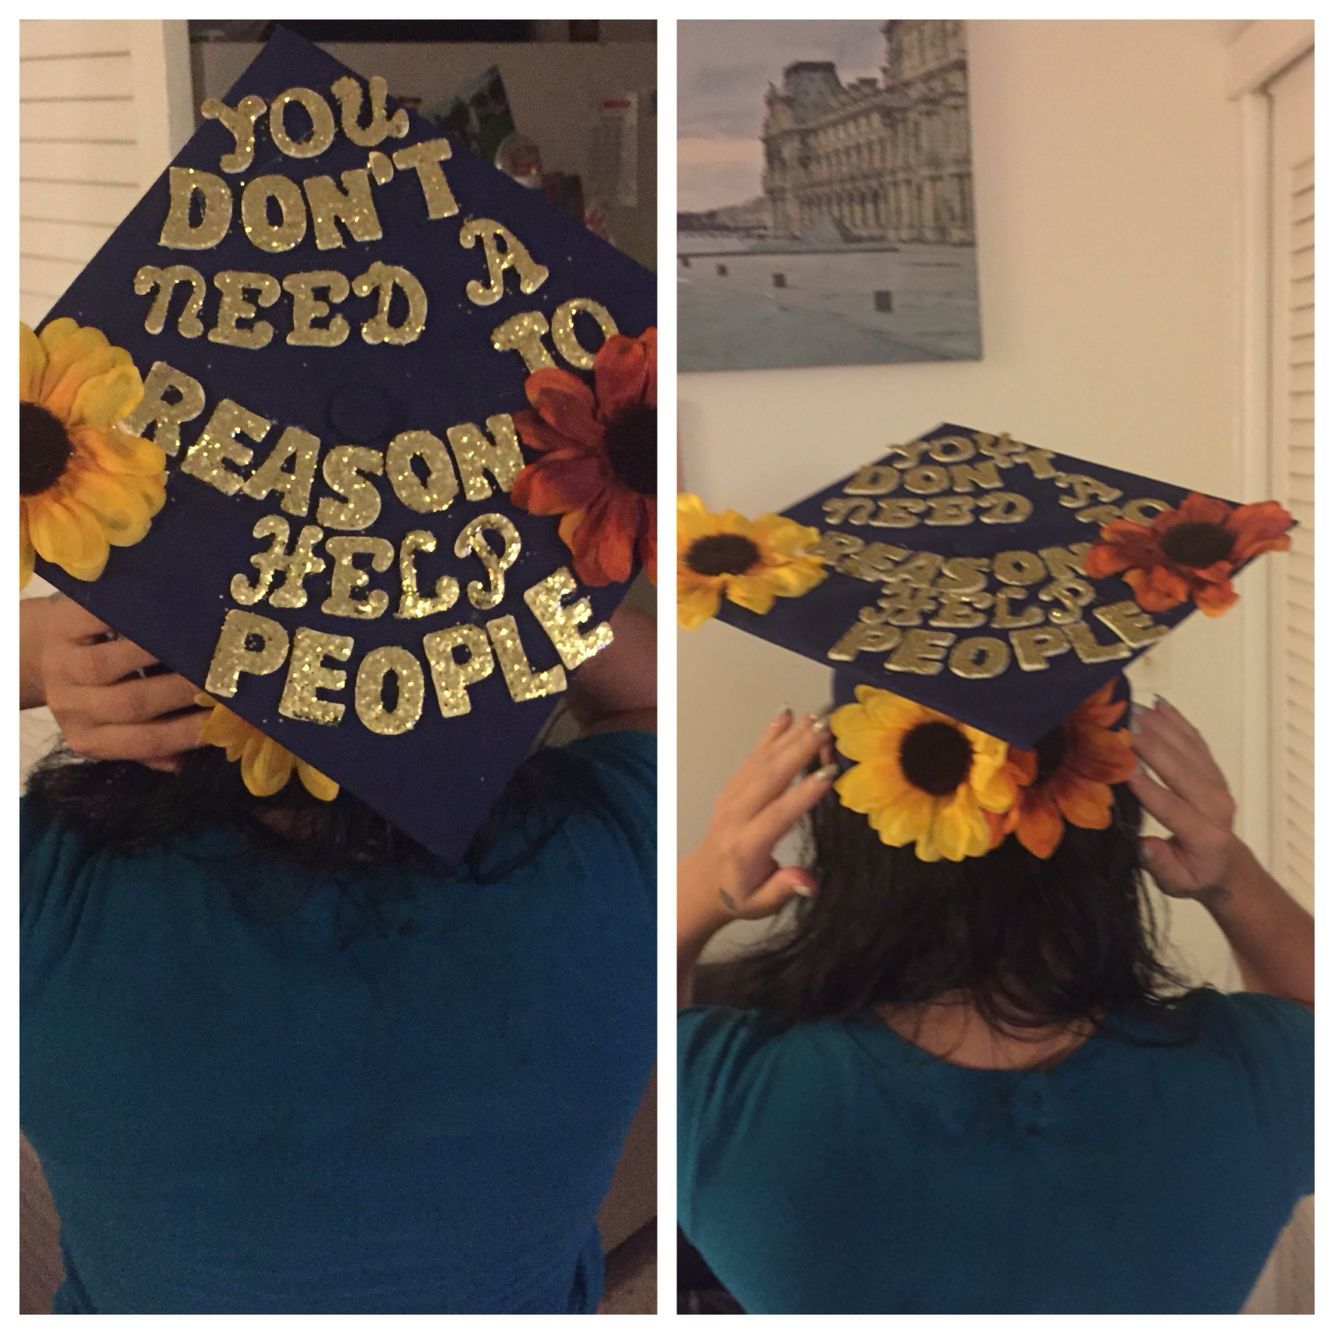 Decorating graduation cap ideas for teachers - Social Work Graduation Cap